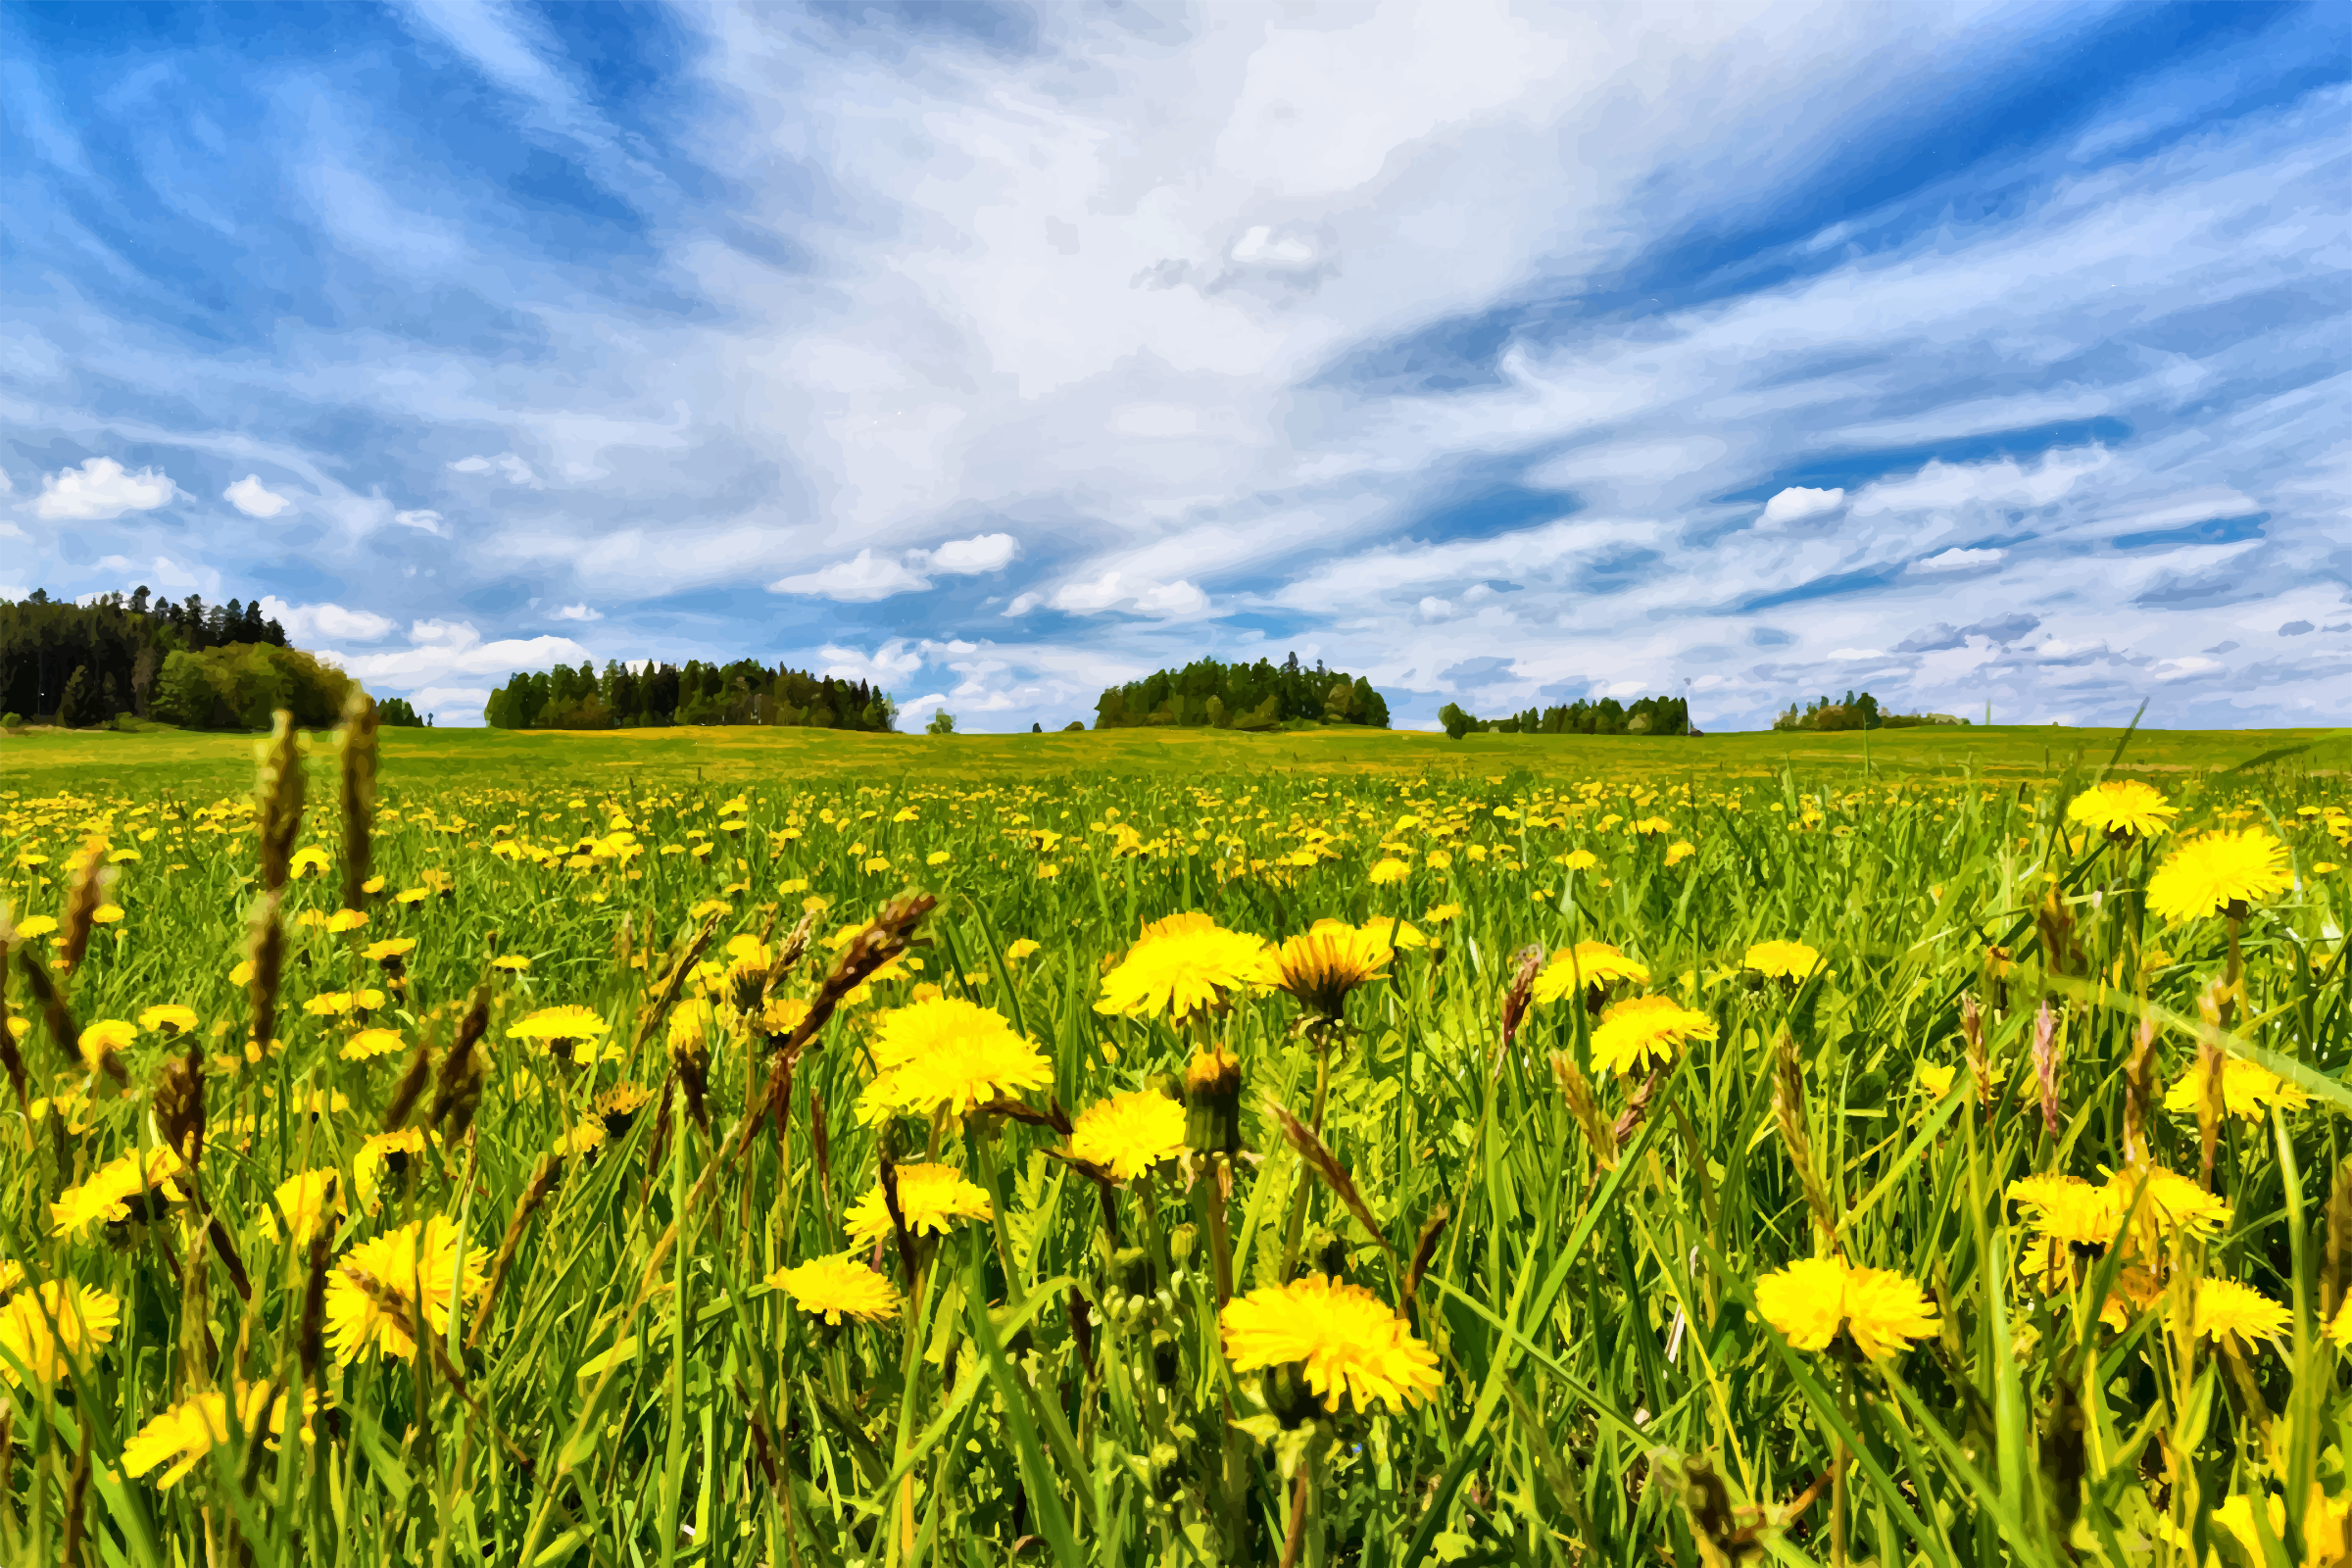 Dandelion Field In Spring moreover Penthouse moreover Forrestbrown Launches London Office At Wework Moorgate also Wardrobes further Vision Statement. on open office space